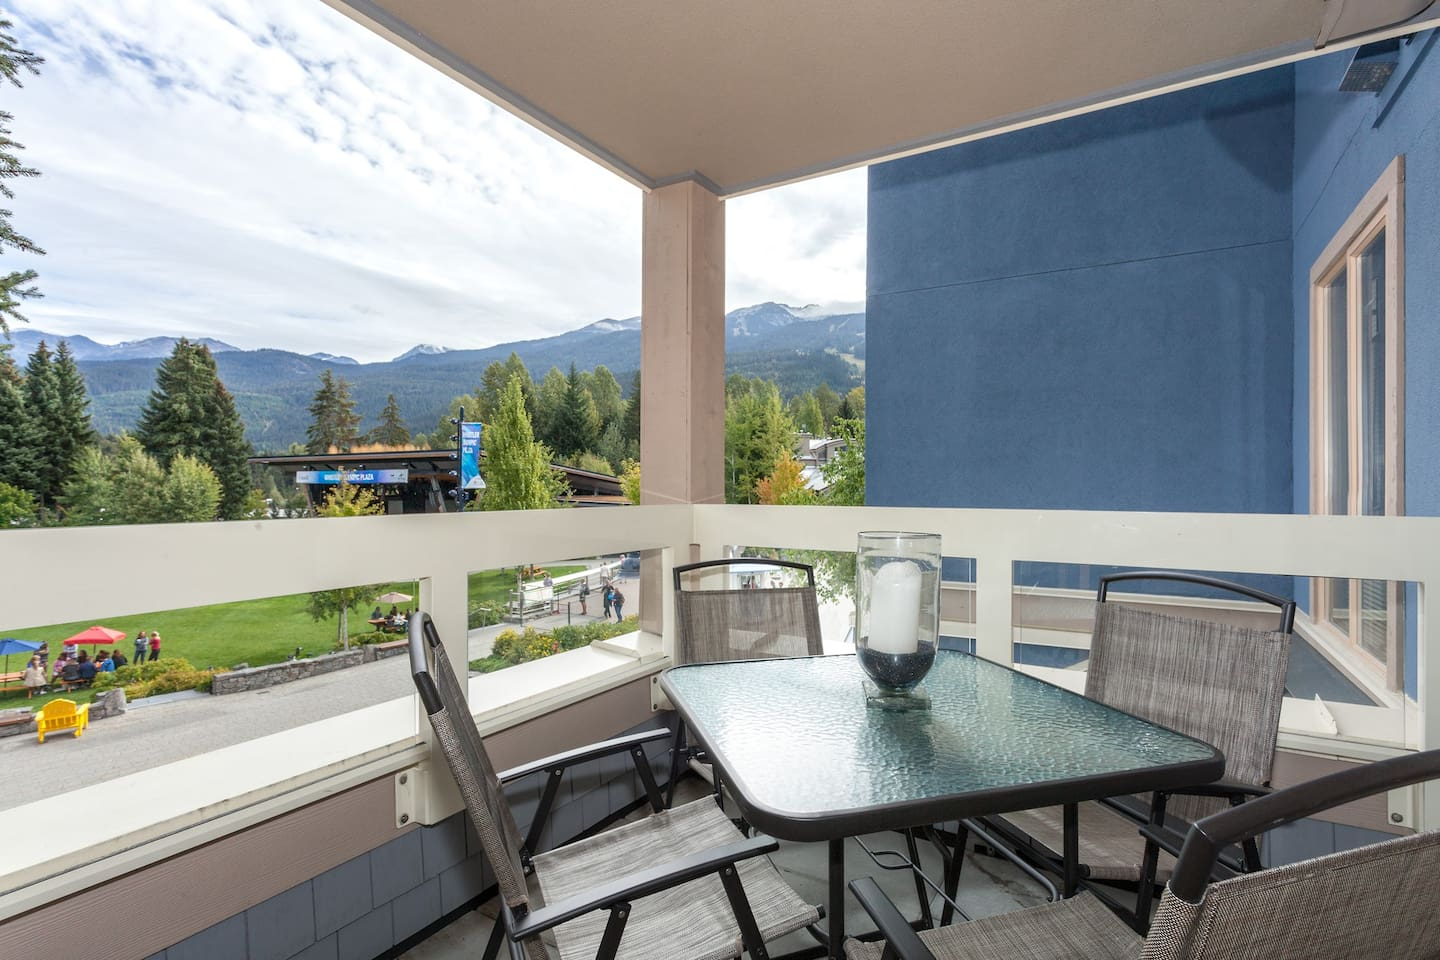 Enjoy the Summer Concert Series on your own private balcony seats overlooking the Whistler Olympic Plaza.